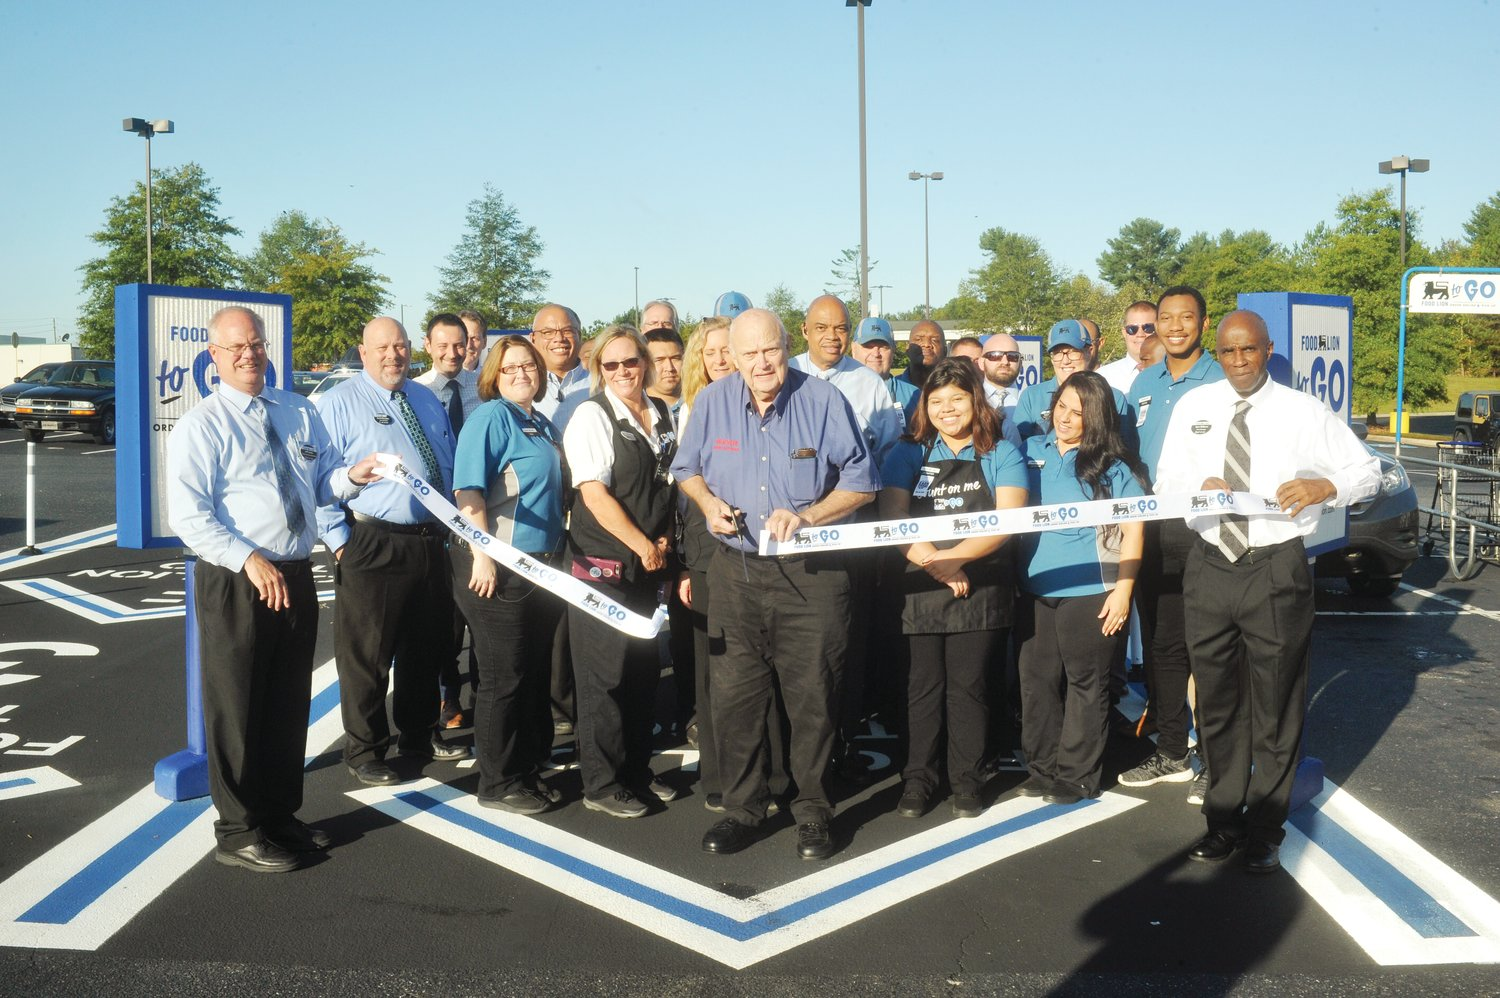 Mayor John Grimes, flanked by members of Food Lion management and employees, cuts the ribbon on the new Food Lion To Go program at the Siler City Food Lion last Monday morning. The new concept in the local store offers online shopping with delivery to the customers car for a low fee. The To Go program is now in operation.